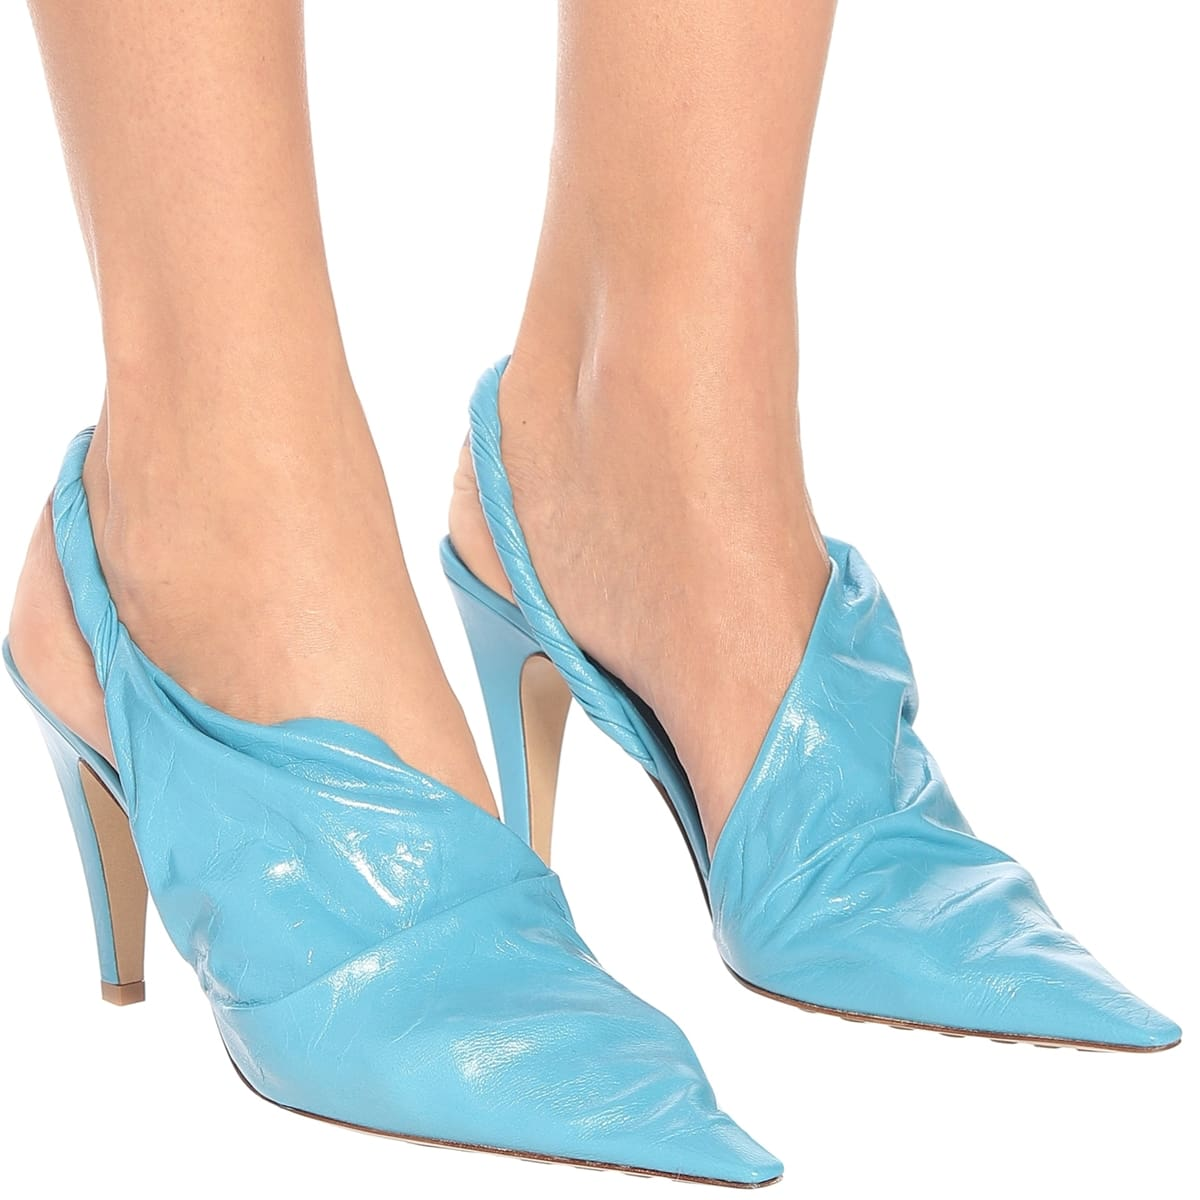 The avant-garde BV Point pumps are made from a single piece of sky blue lambskin leather with contoured vamps and exaggerated point toes